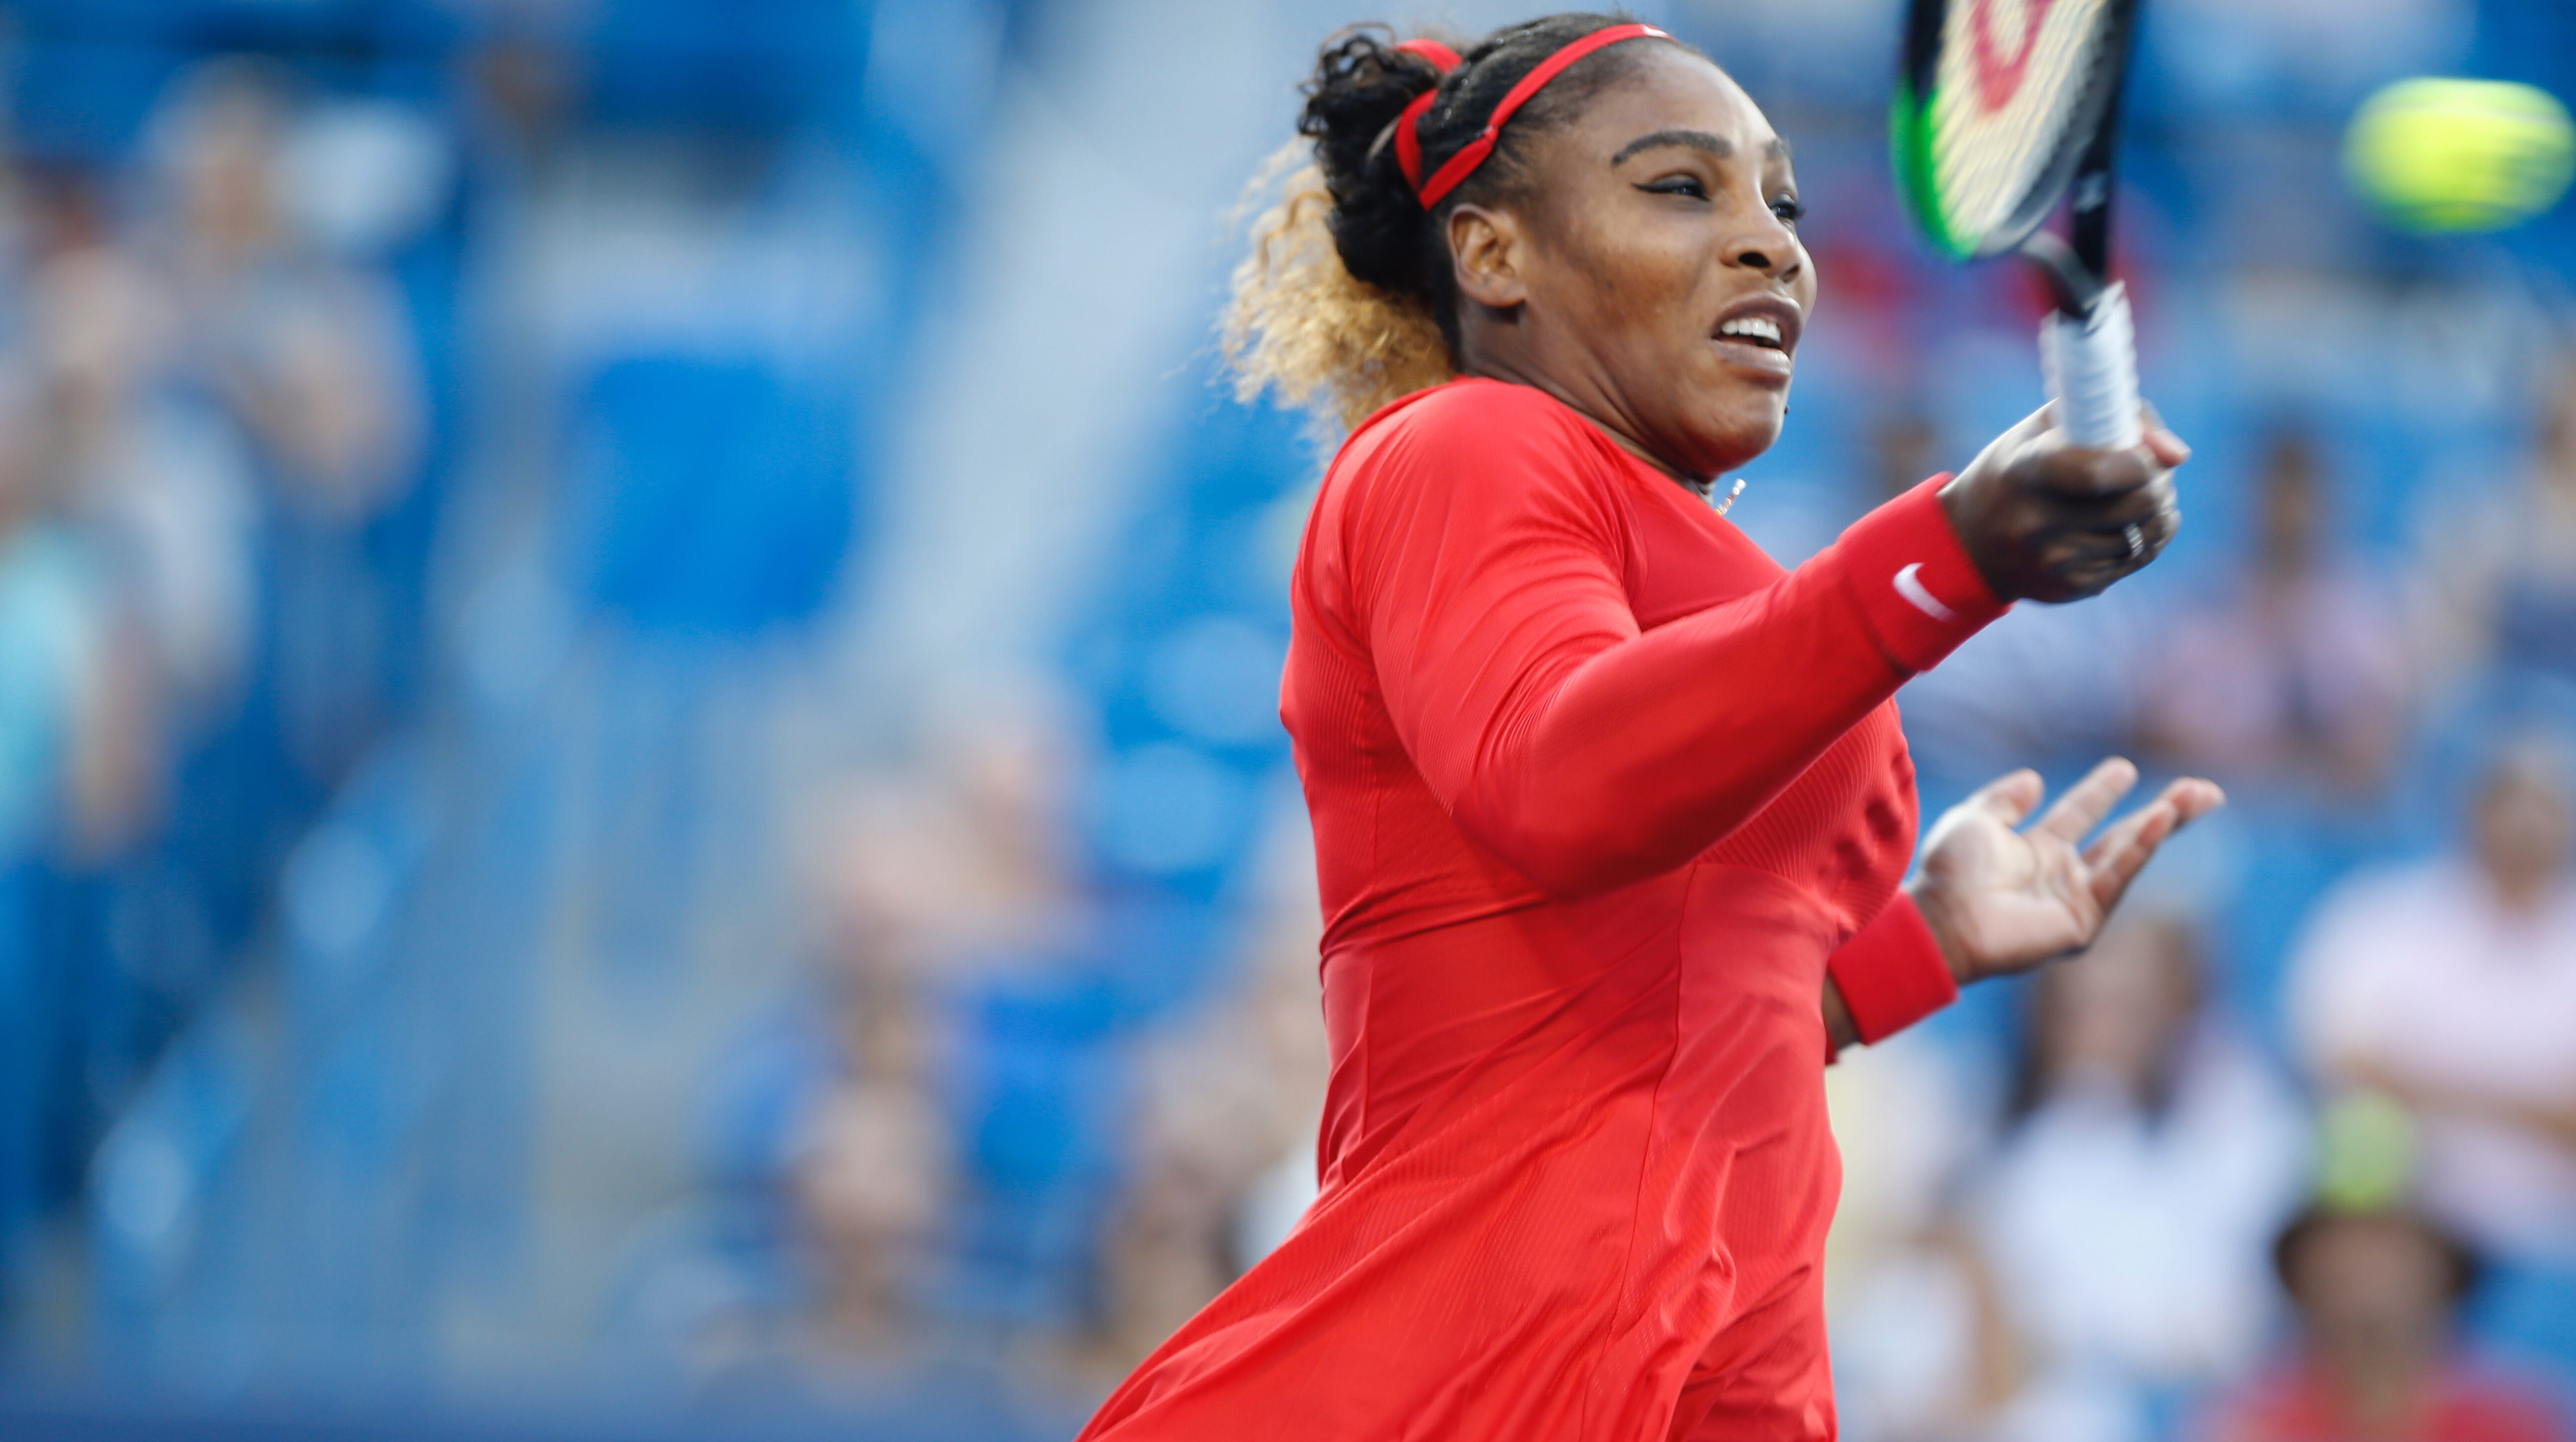 Serena Williams dominates in first round of Western & Southern Open